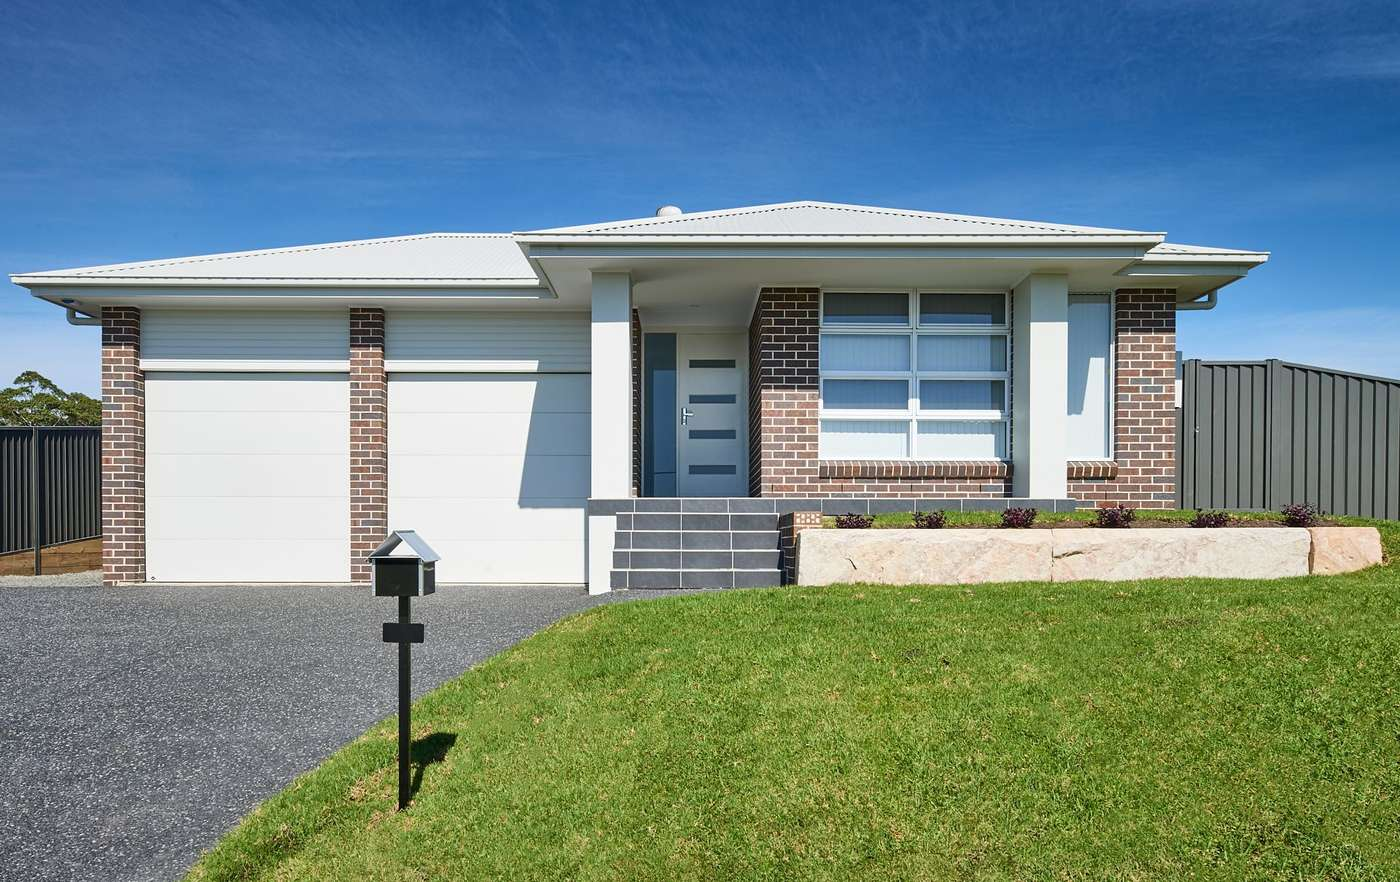 Main view of Homely house listing, 2 Michigan Way, Burrill Lake, NSW 2539